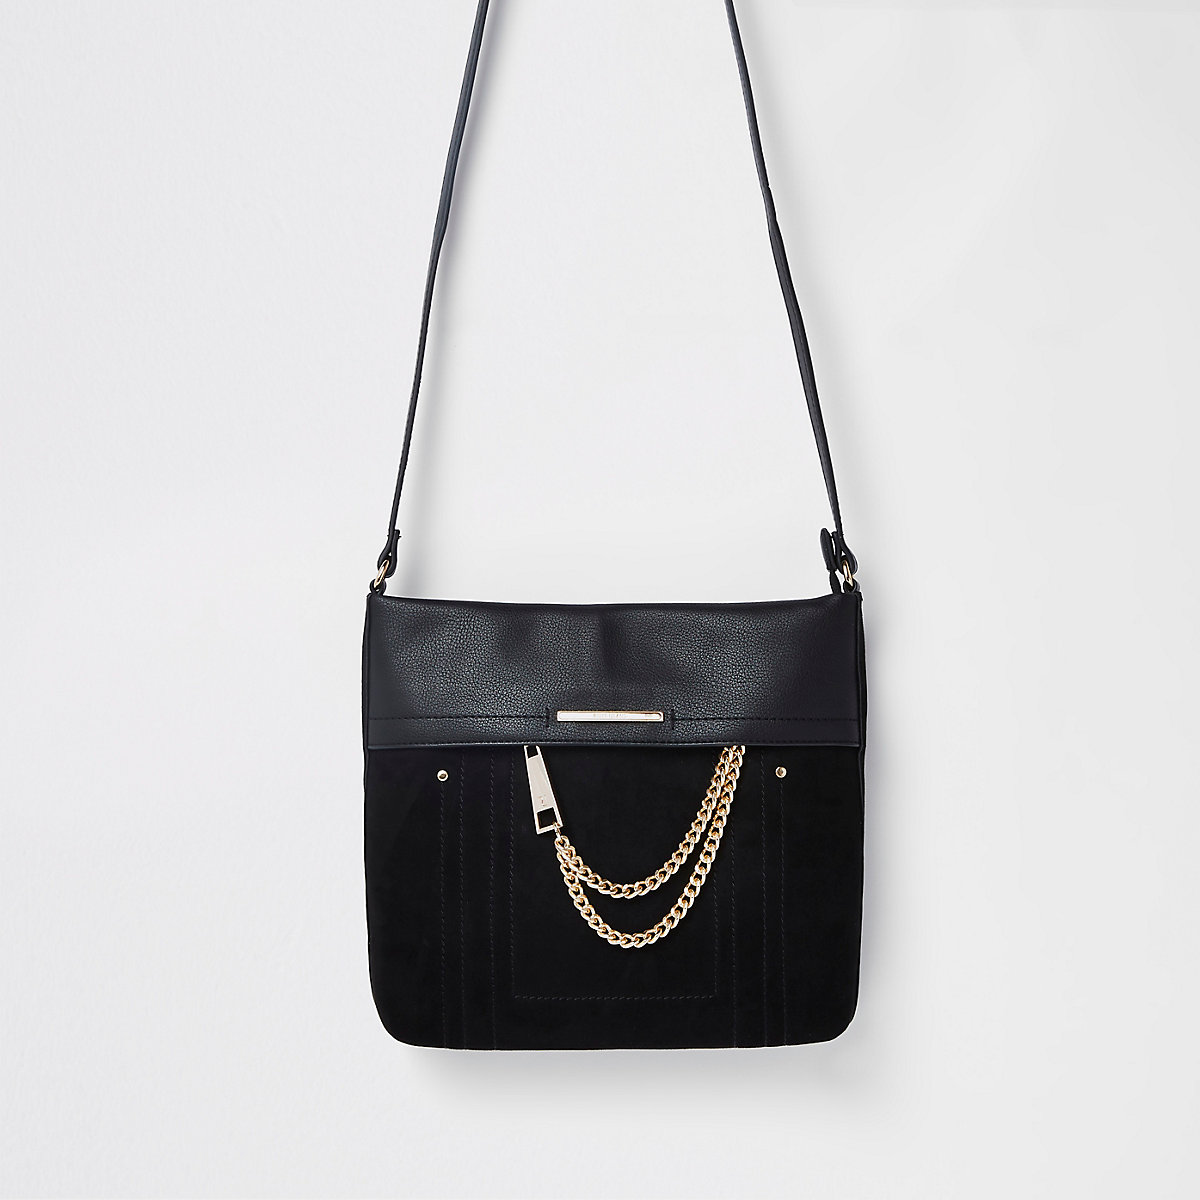 Black chain front cross body bag